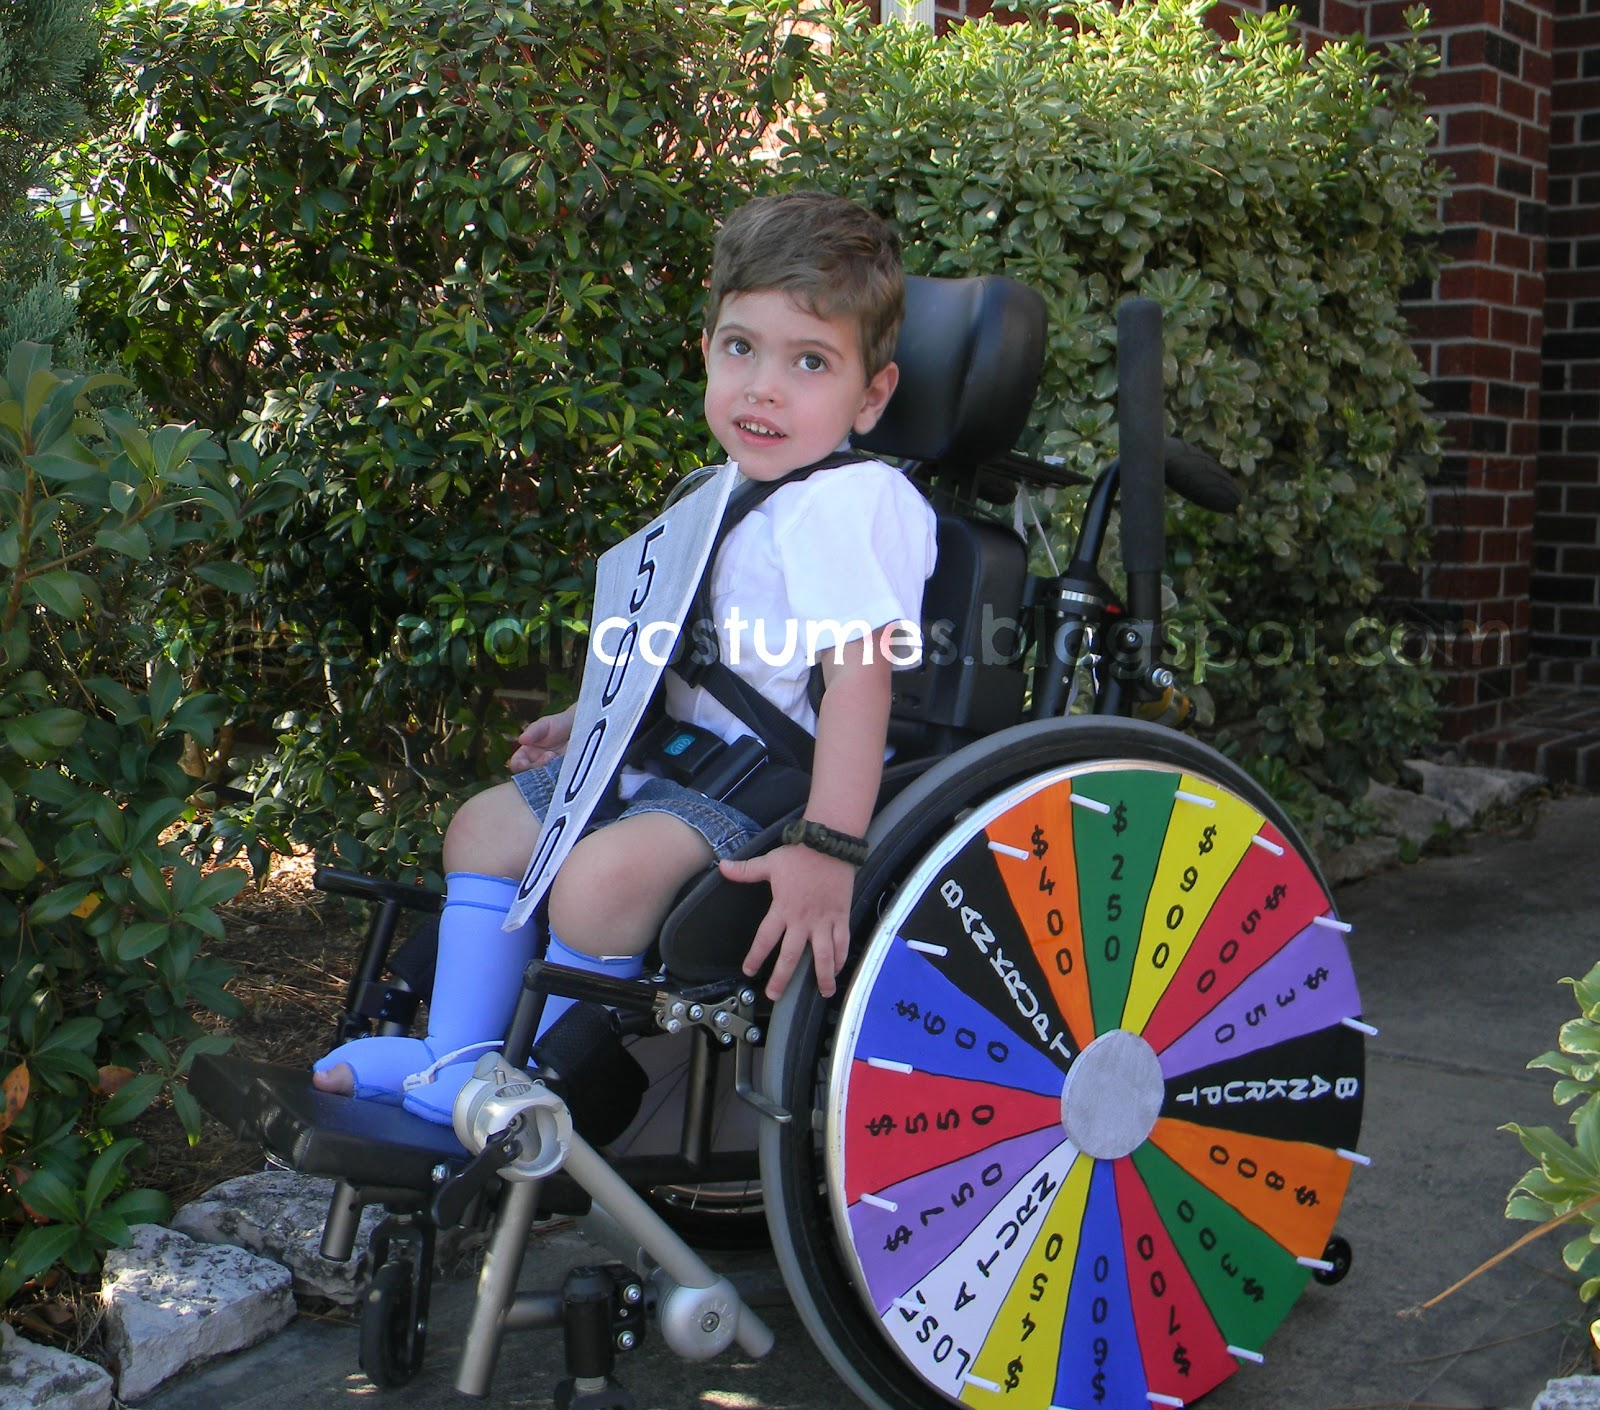 fishing chair small covers & linens madison heights mi wheelchair costumes: wheel of fortune costume